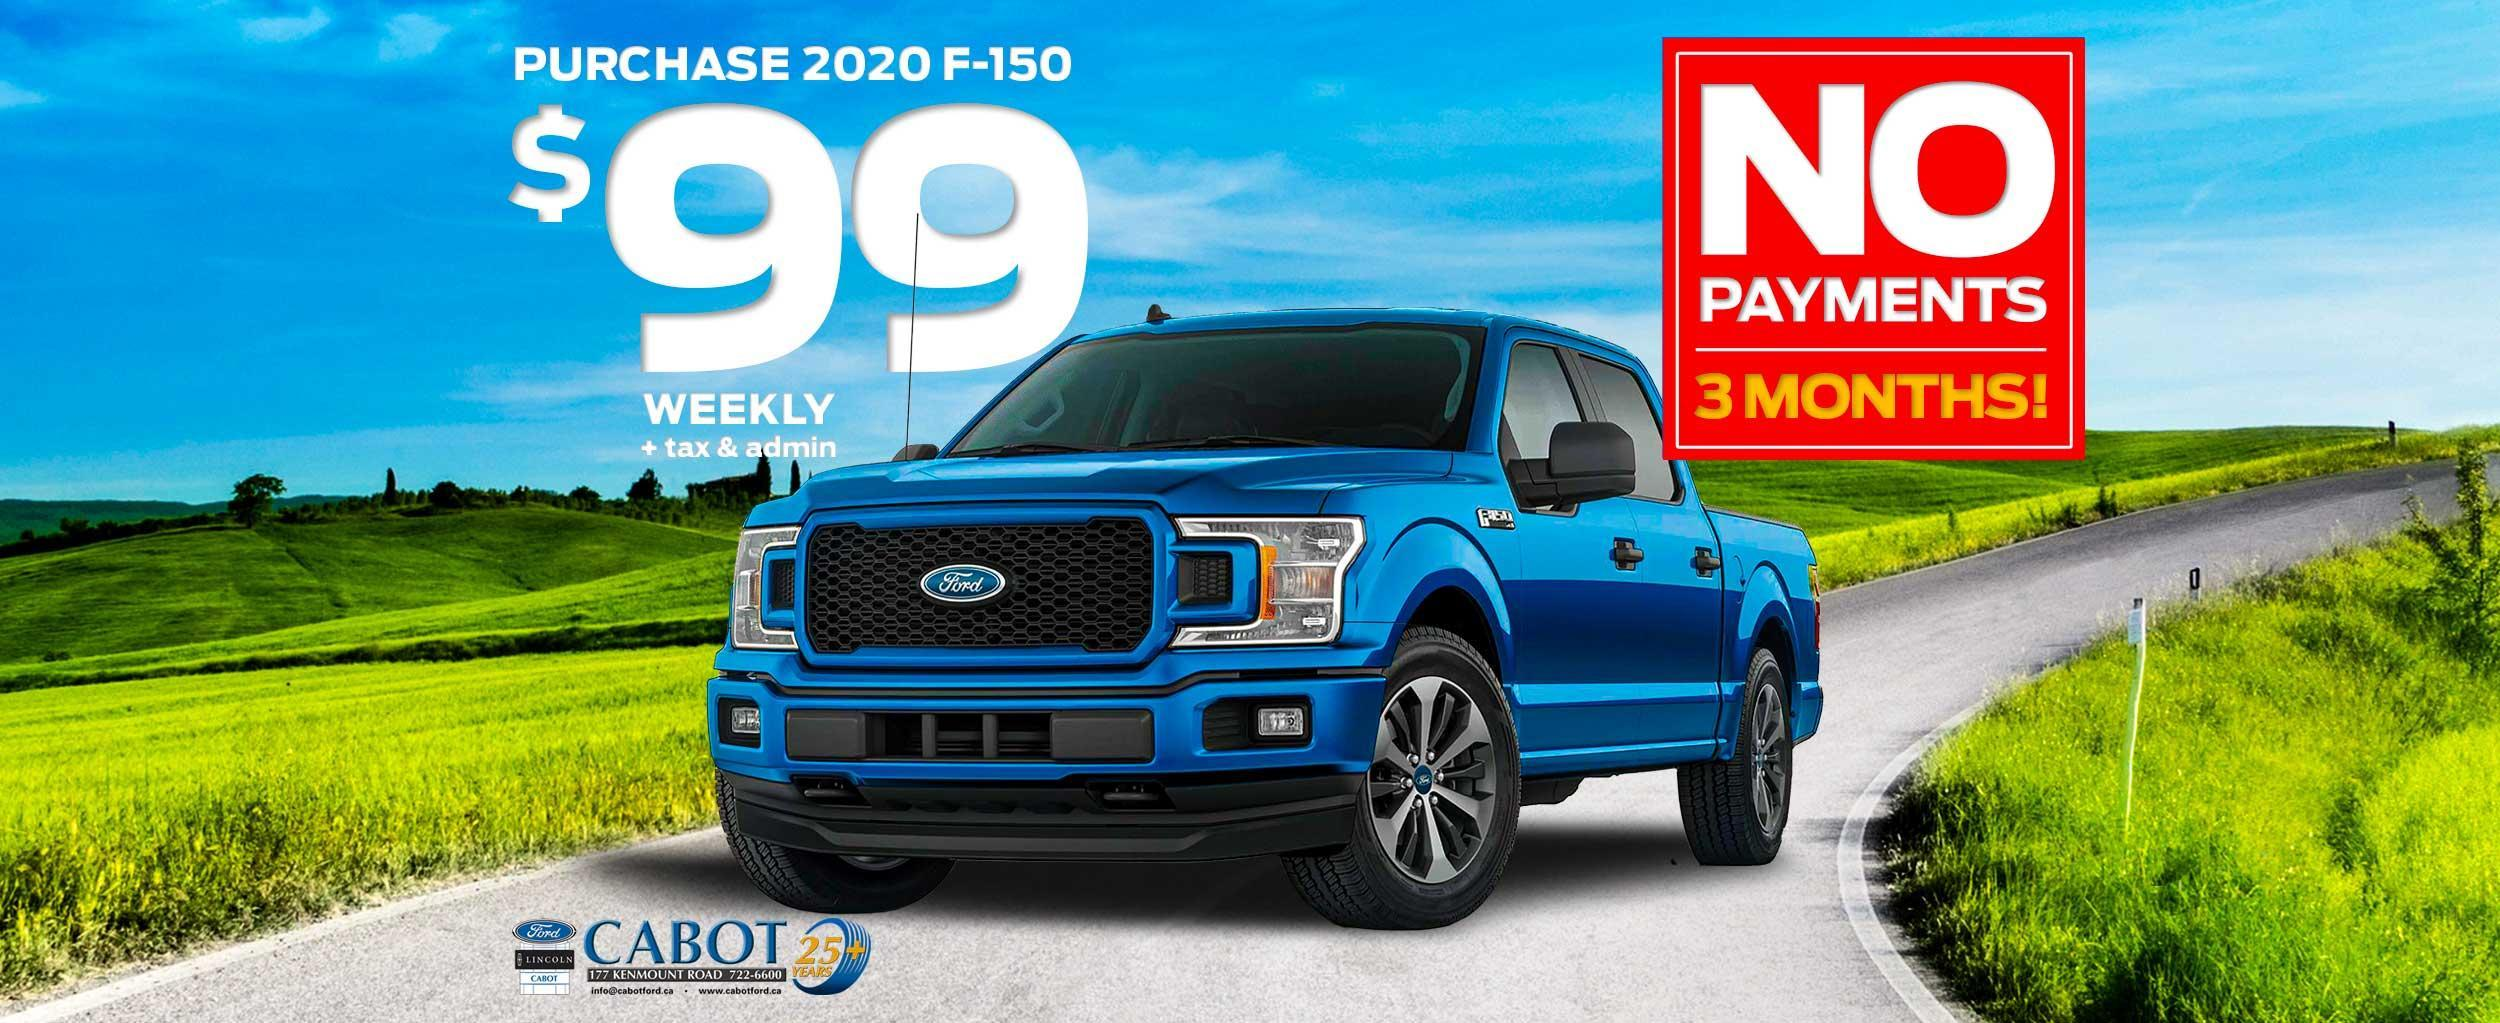 PURCHASE a 2020 F-150 STX 4x4 CREWCAB, for JUST $99 WEEKLY + tax and admin!  NO PAYMENTS FOR THREE MONTHS!  For a LIMITED TIME ONLY, and ONLY AT CABOT! 722-6600.